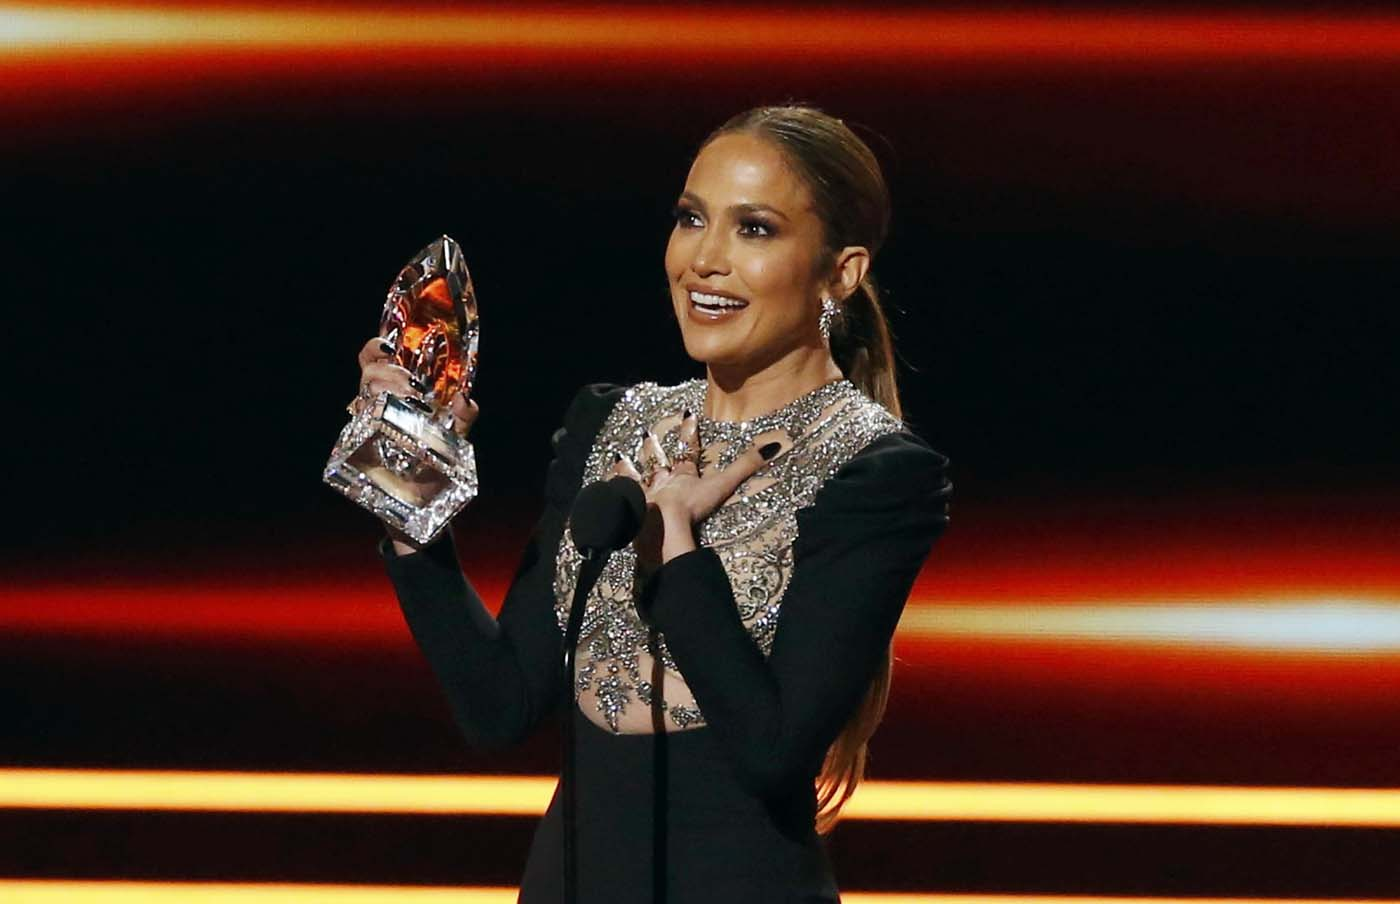 Actress Jennifer Lopez accepts the award for Favorite TV Crime Drama Actress during the People's Choice Awards 2017 in Los Angeles, California, U.S., January 18, 2017.   REUTERS/Mario Anzuoni